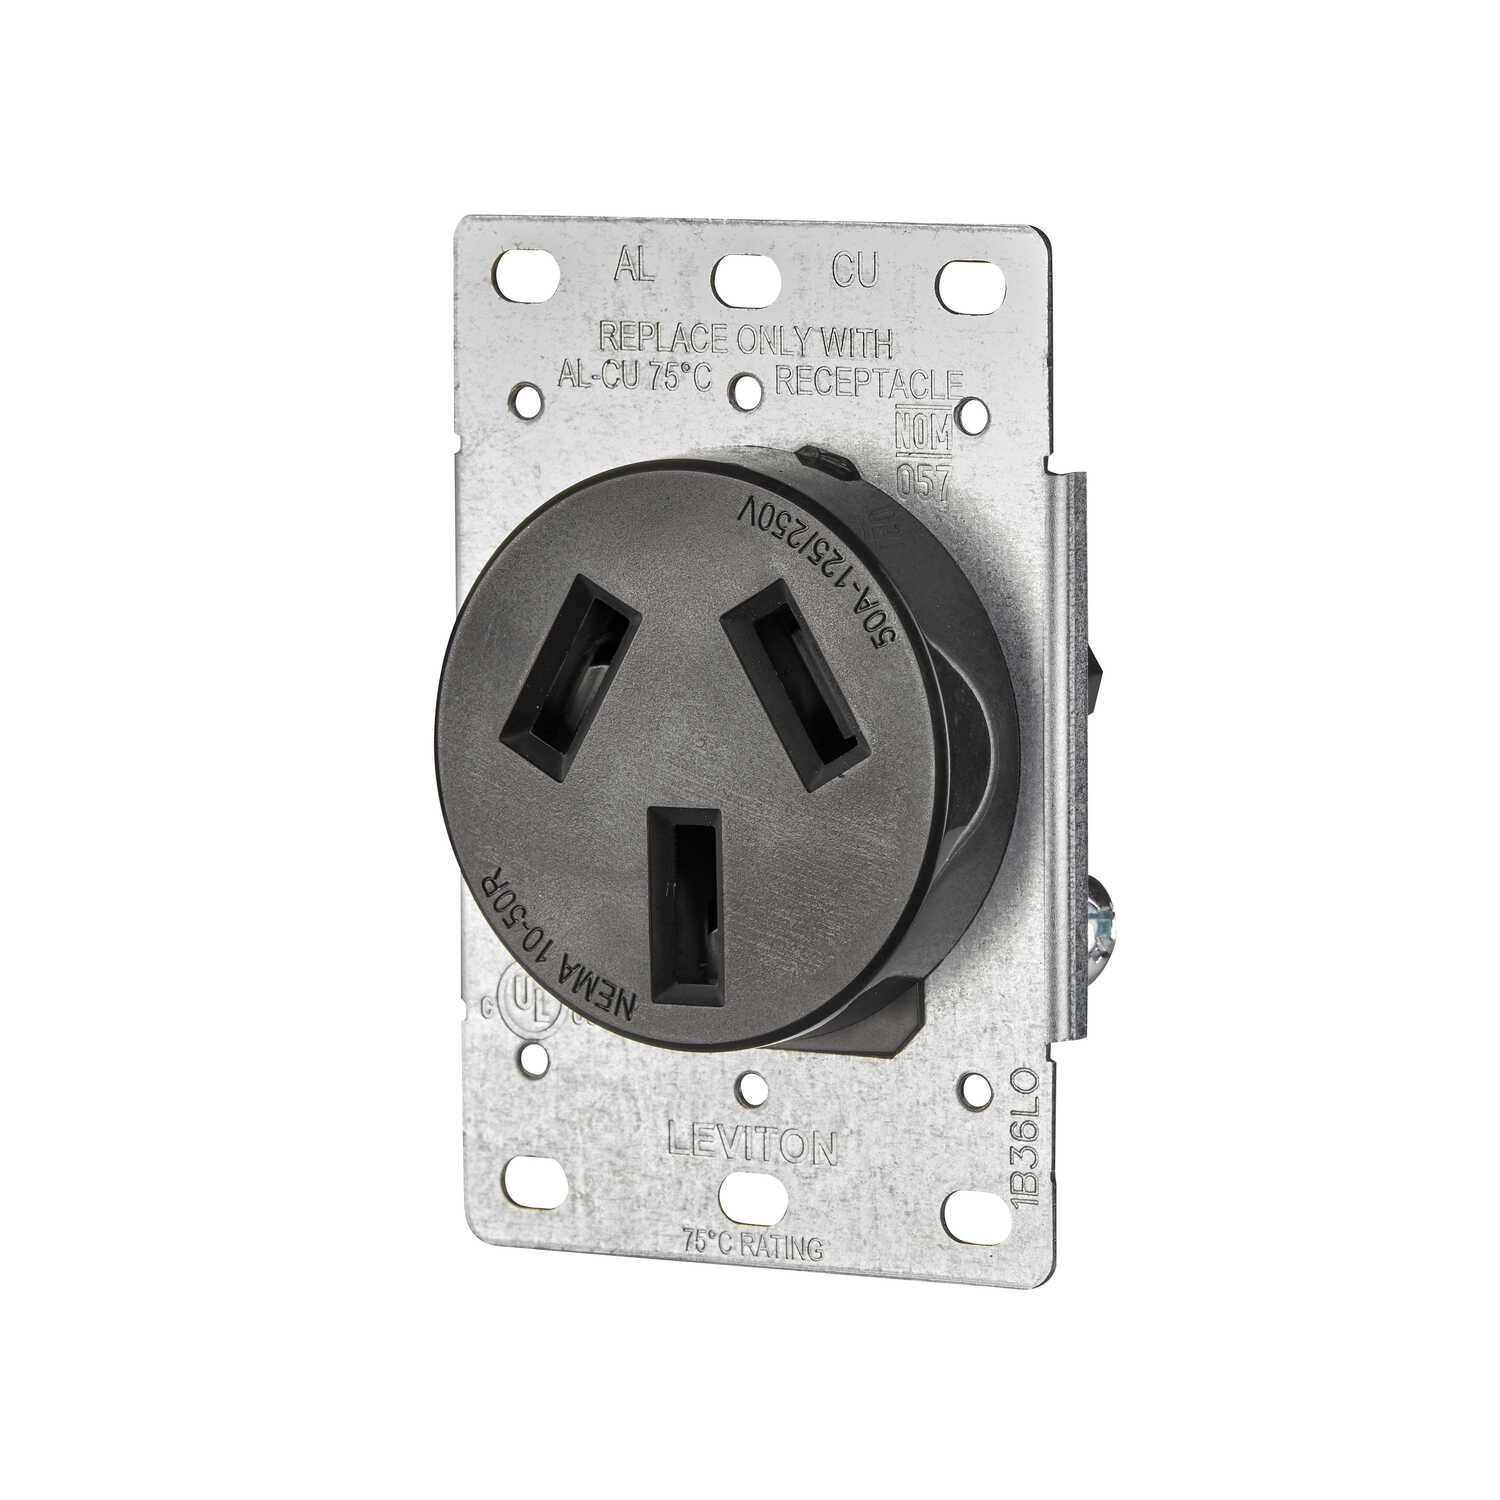 Leviton  50 amps 125/250 volt Black  Outlet  10-50R  1 pk